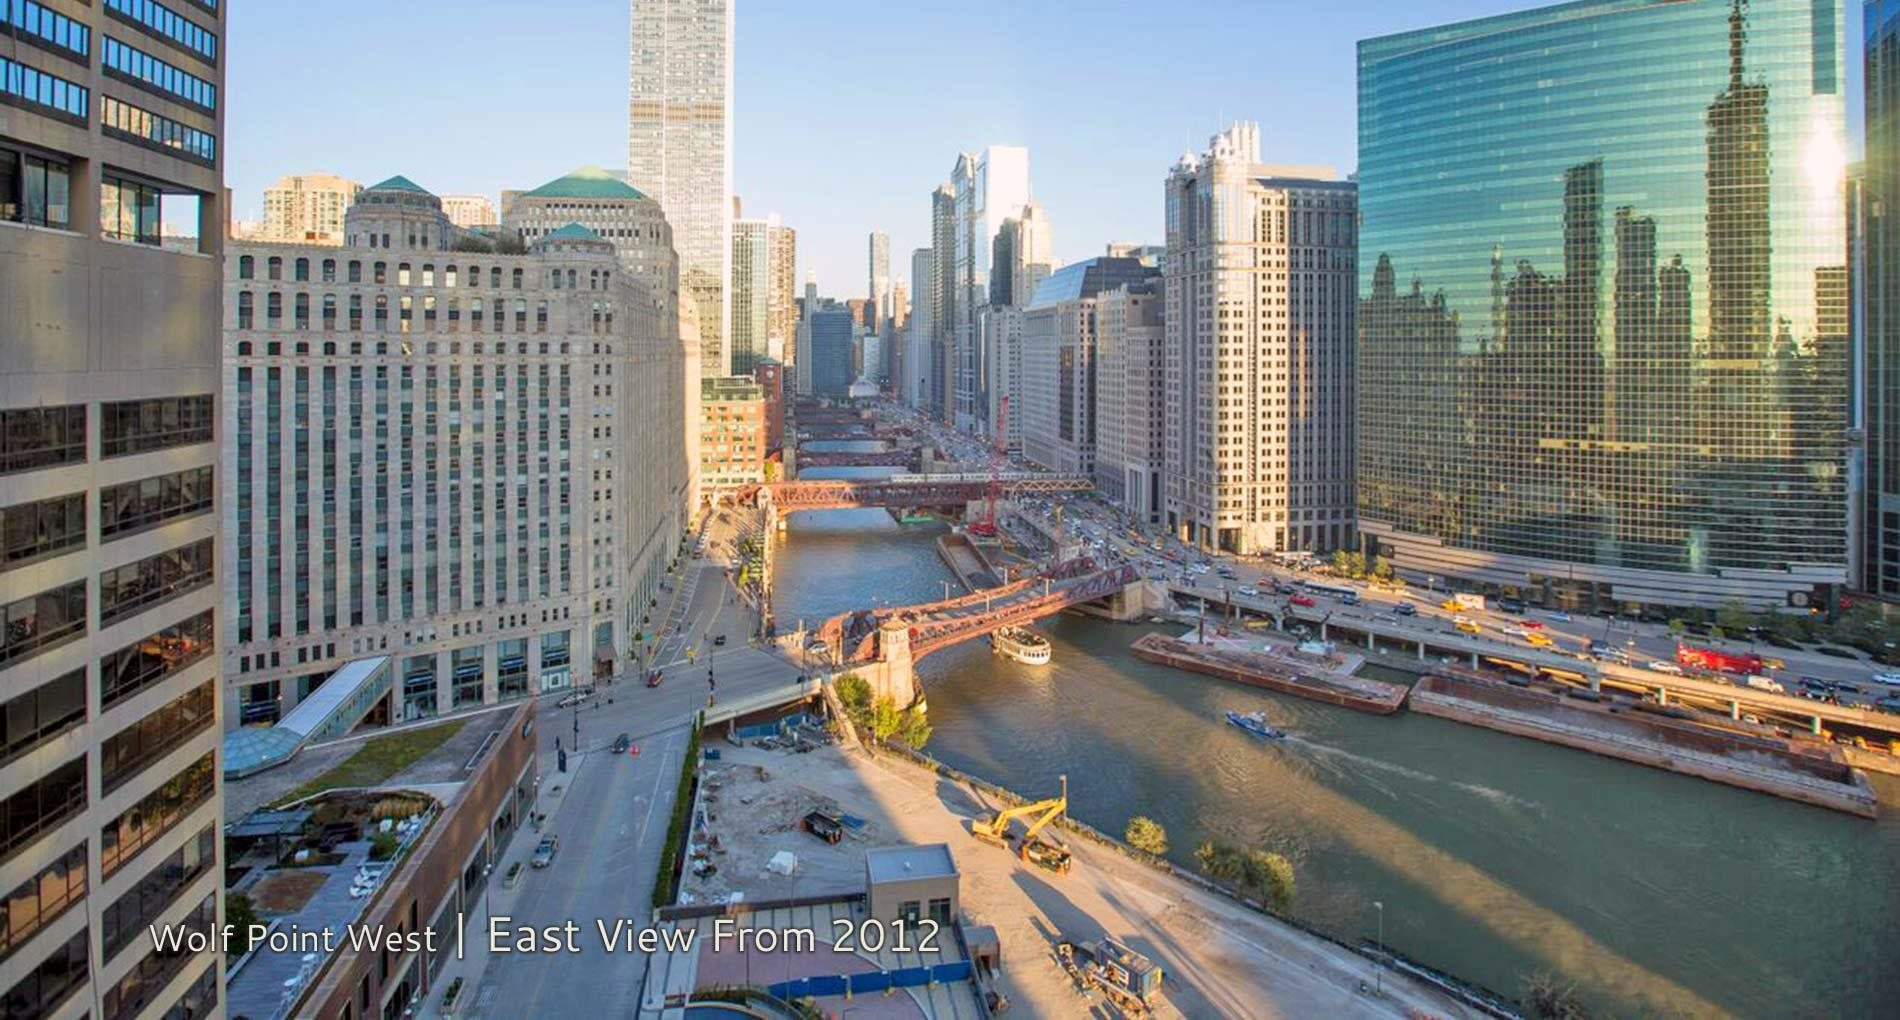 Wolf Point West | East View From 2012